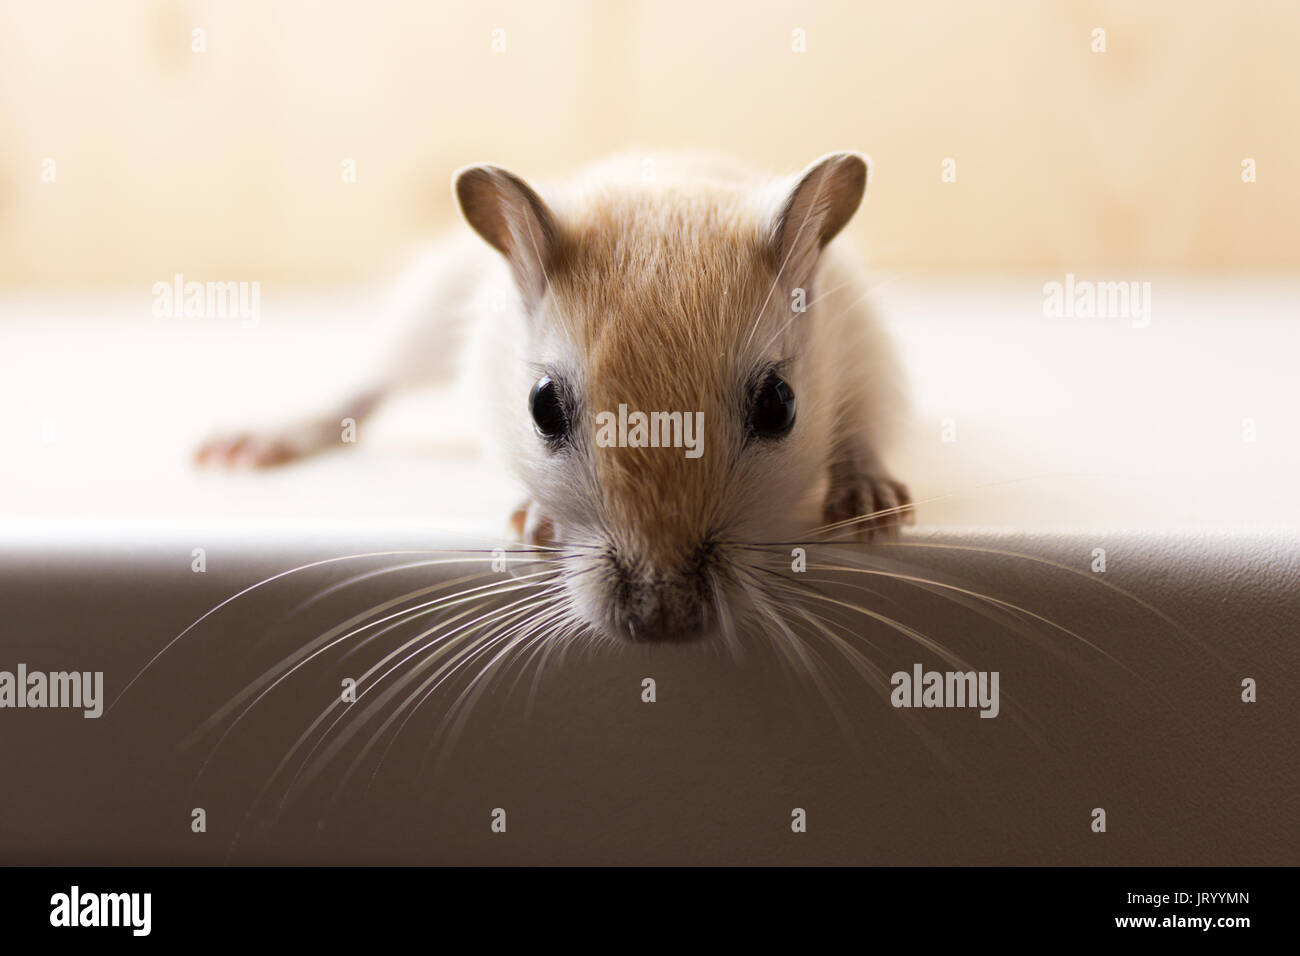 Fluffy baby of gerbil on neutral background - Stock Image